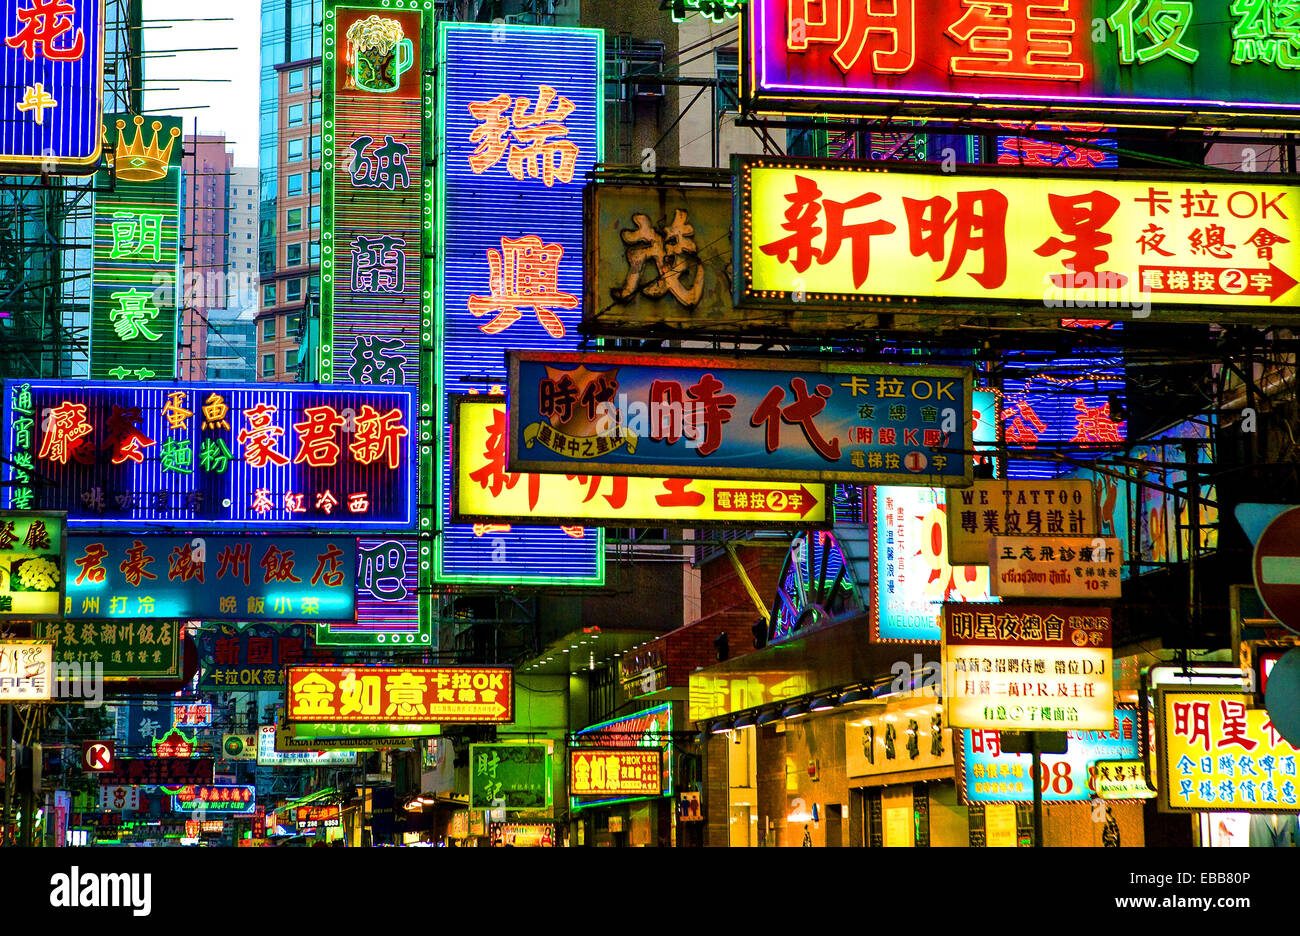 Hong Kong, a crowd of illuminated signs in the old city center - Stock Image